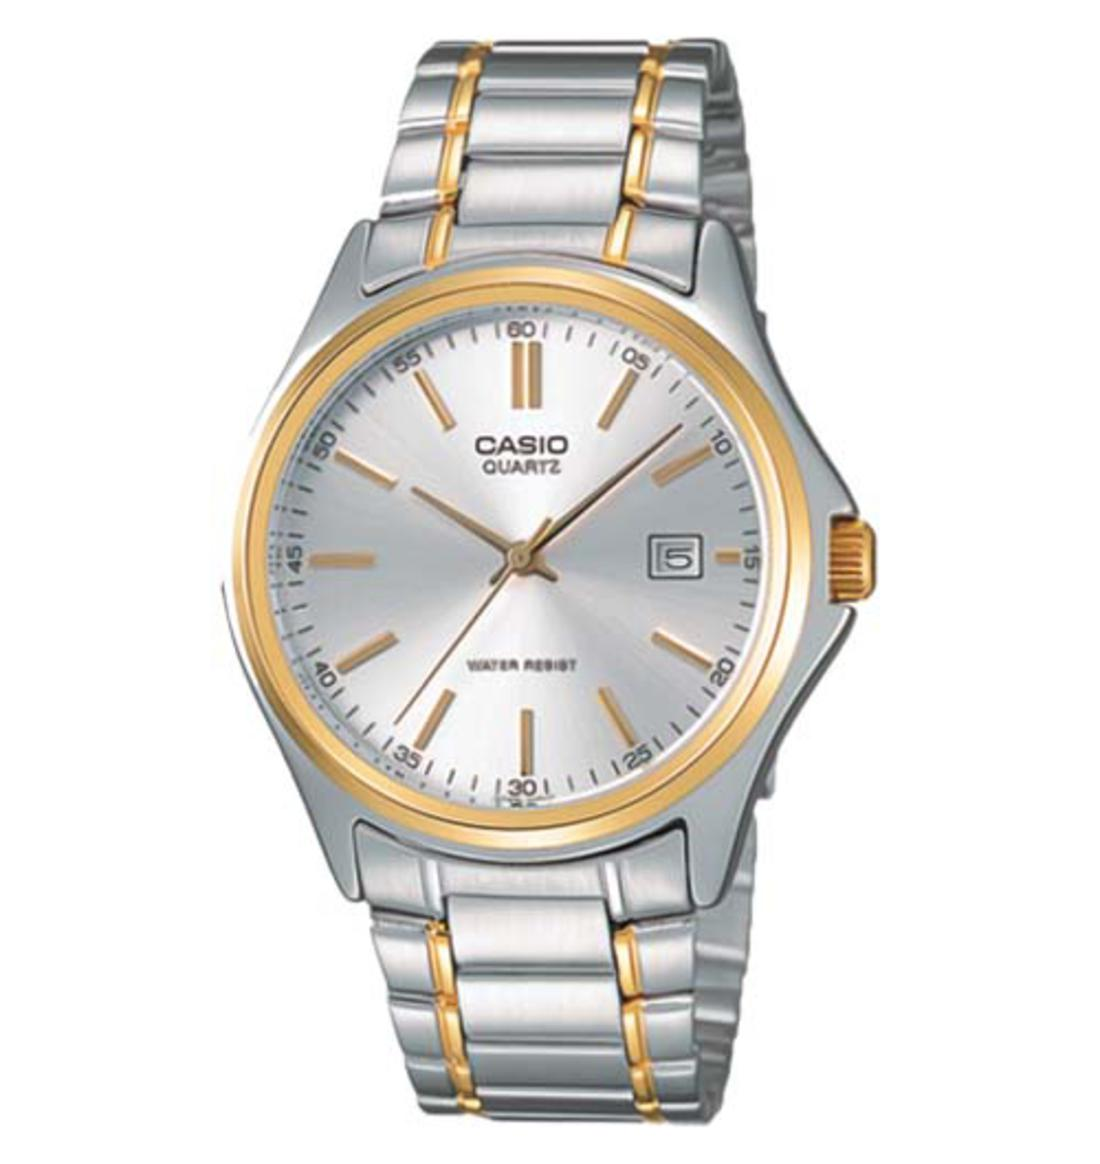 Casio Men's Silver & Golden Watch-MTP-1183G-7A